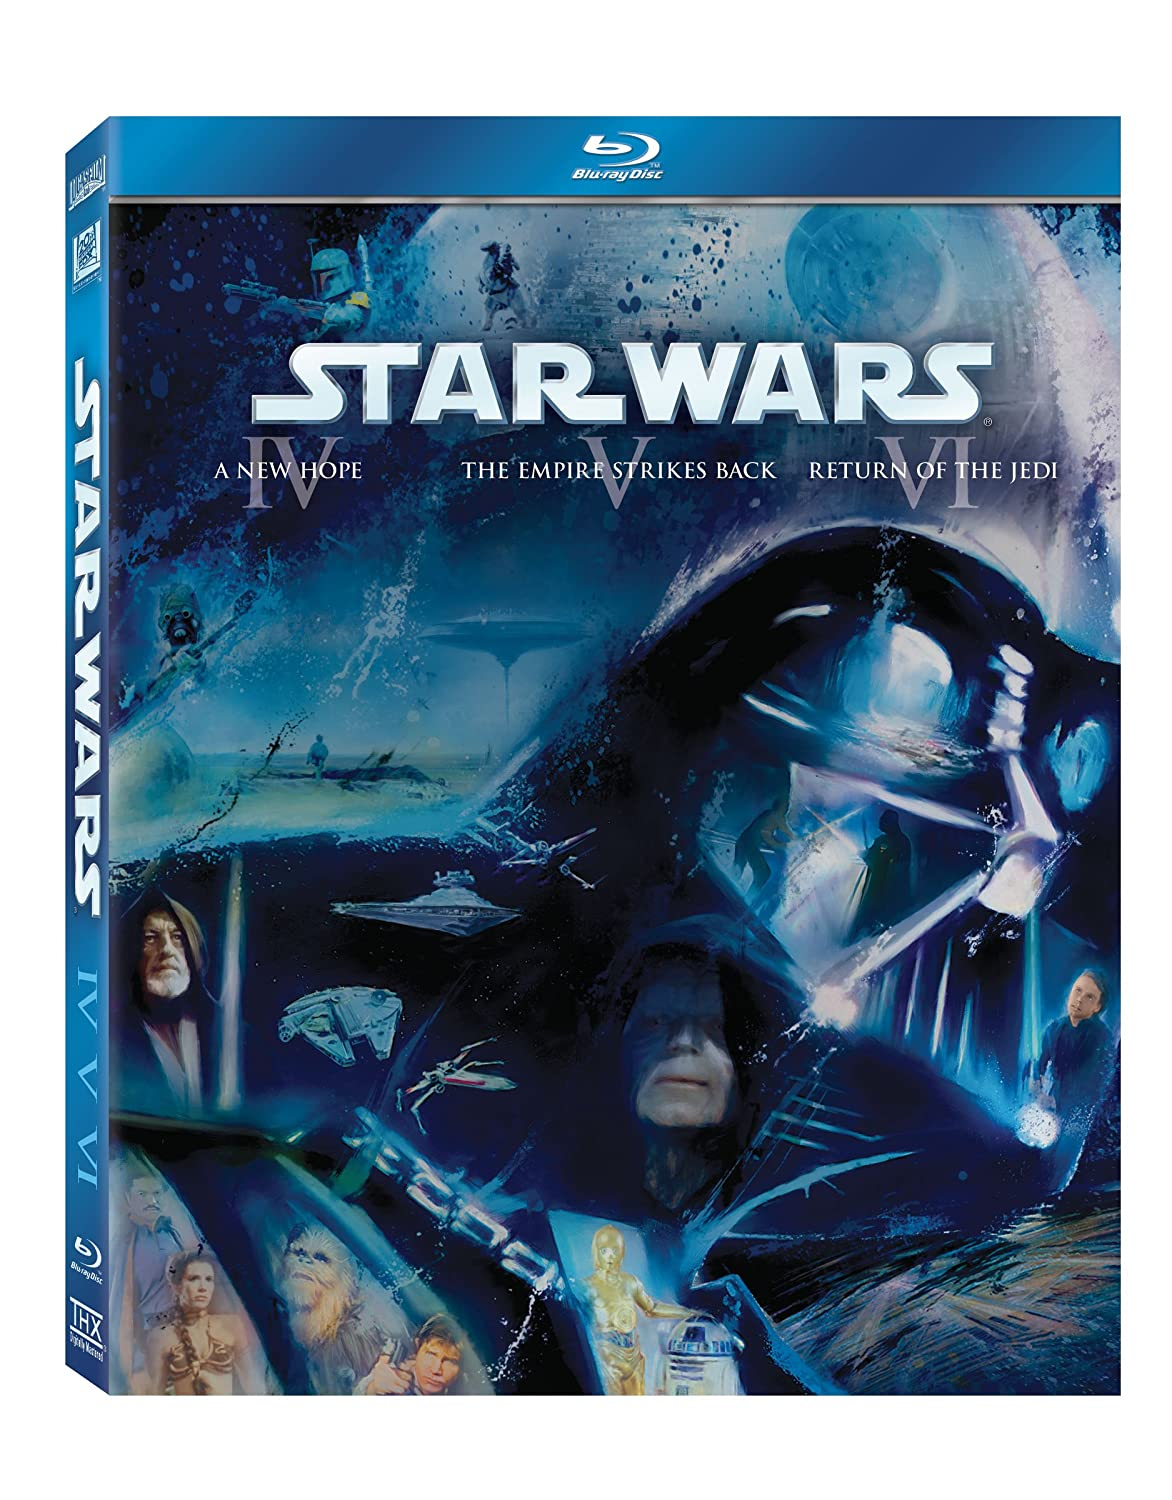 Amazon com: Star Wars: The Original Trilogy (Episode IV: A